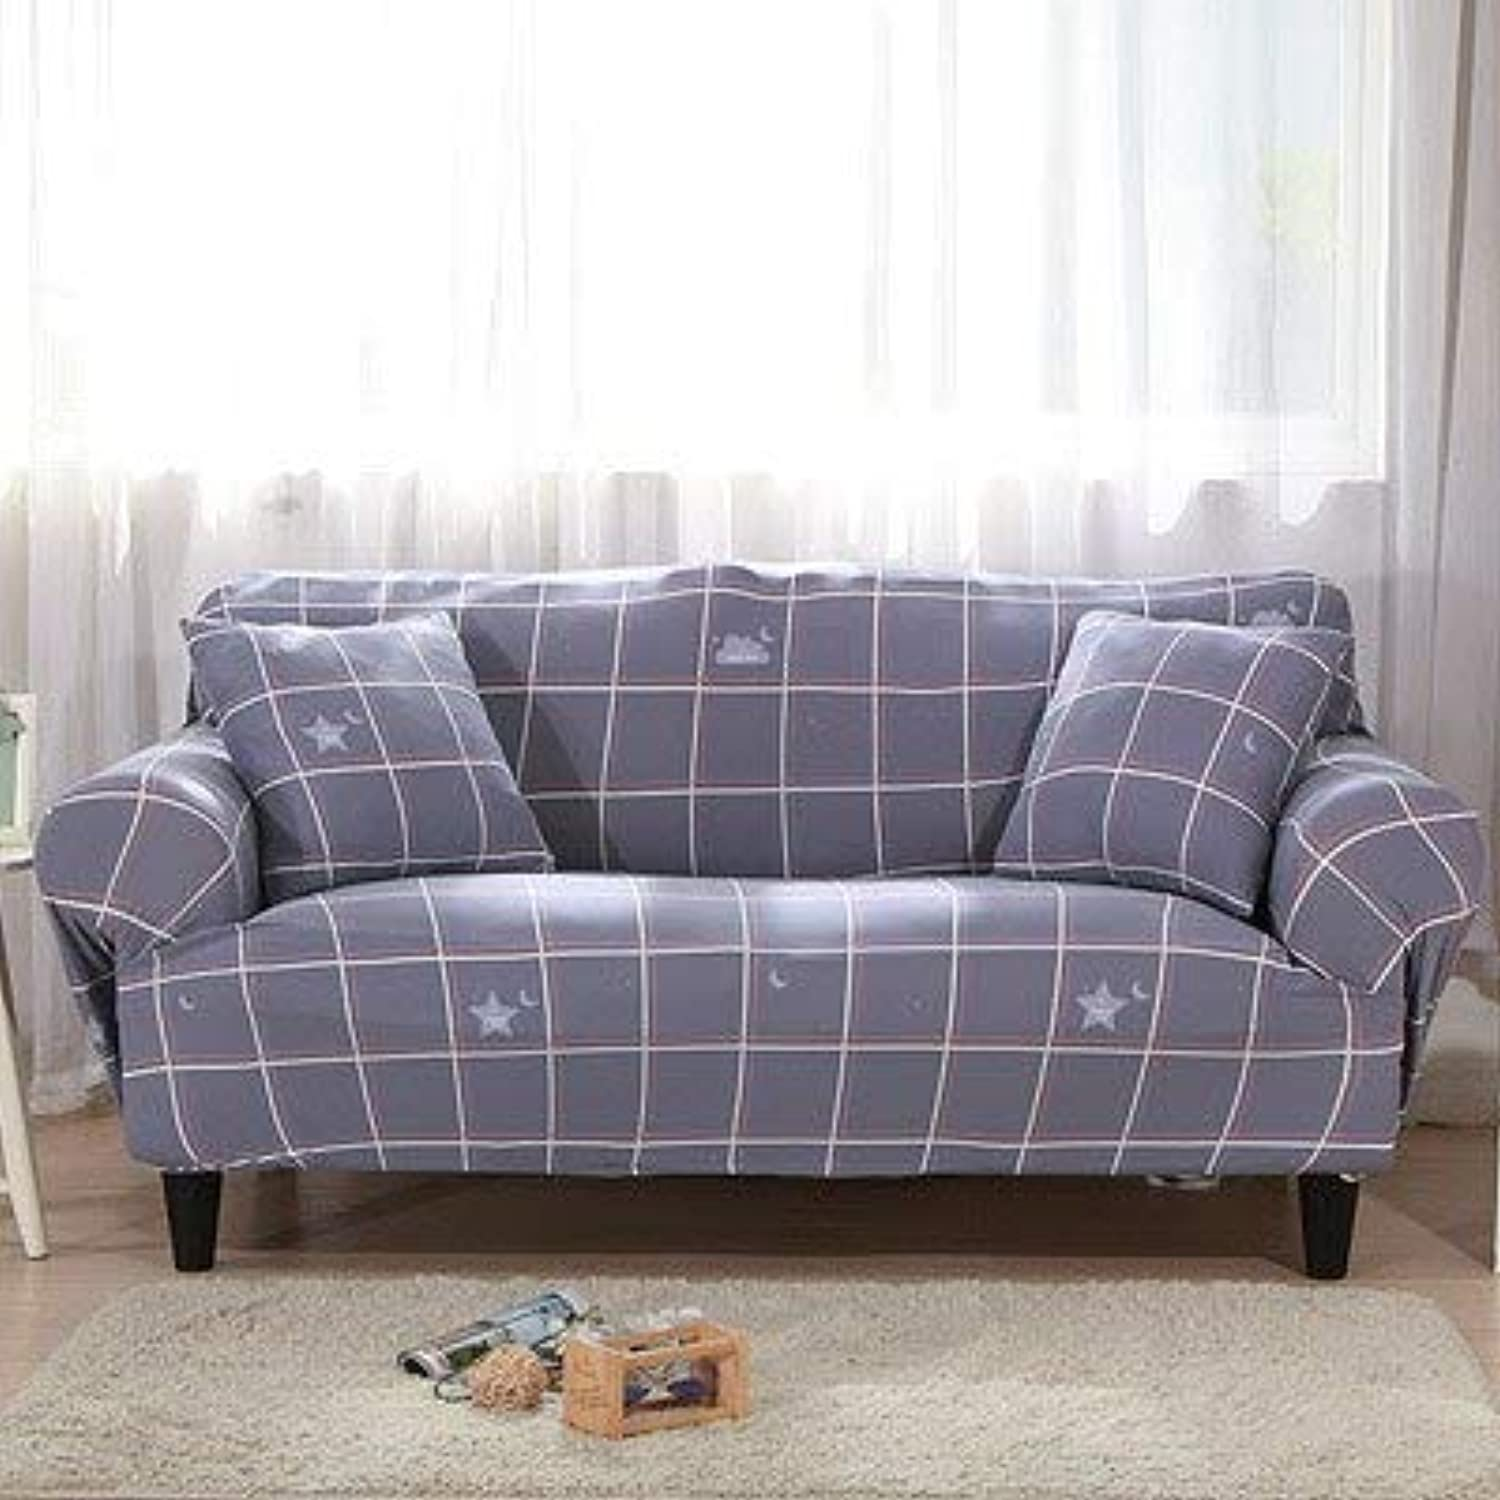 Farmerly Elastic Sofa Cover Printed Flowers Slipcover Tight Wrap All-Inclusive Corner Sofa Cover Stretch Furniture Covers 1 2 3 4 Seater   11, 2 seat